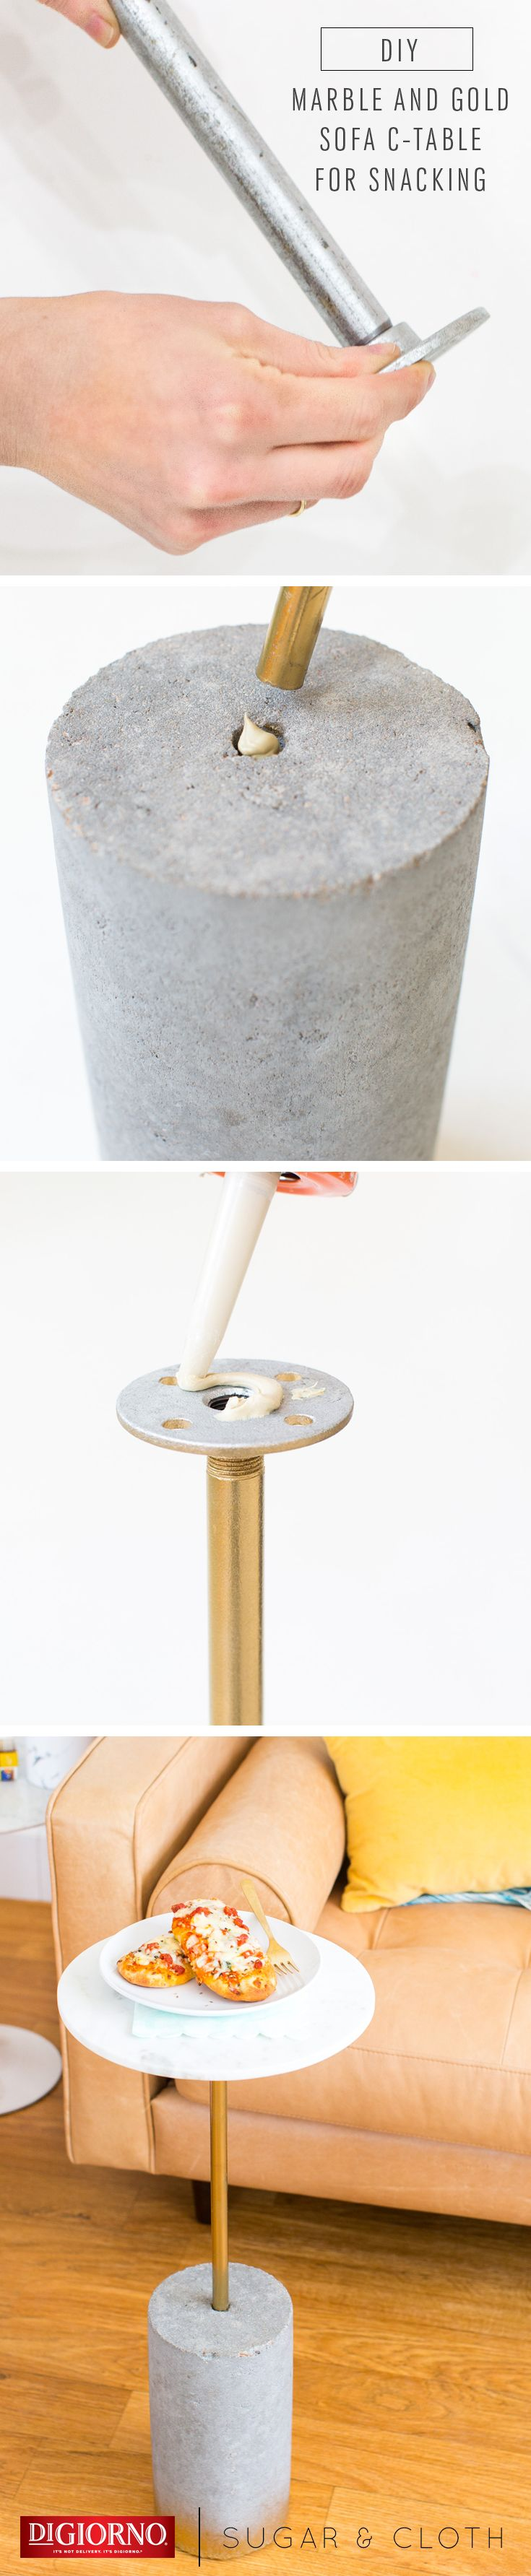 How to make a sofa table out of floor boards - Diy Marble And Gold C Table